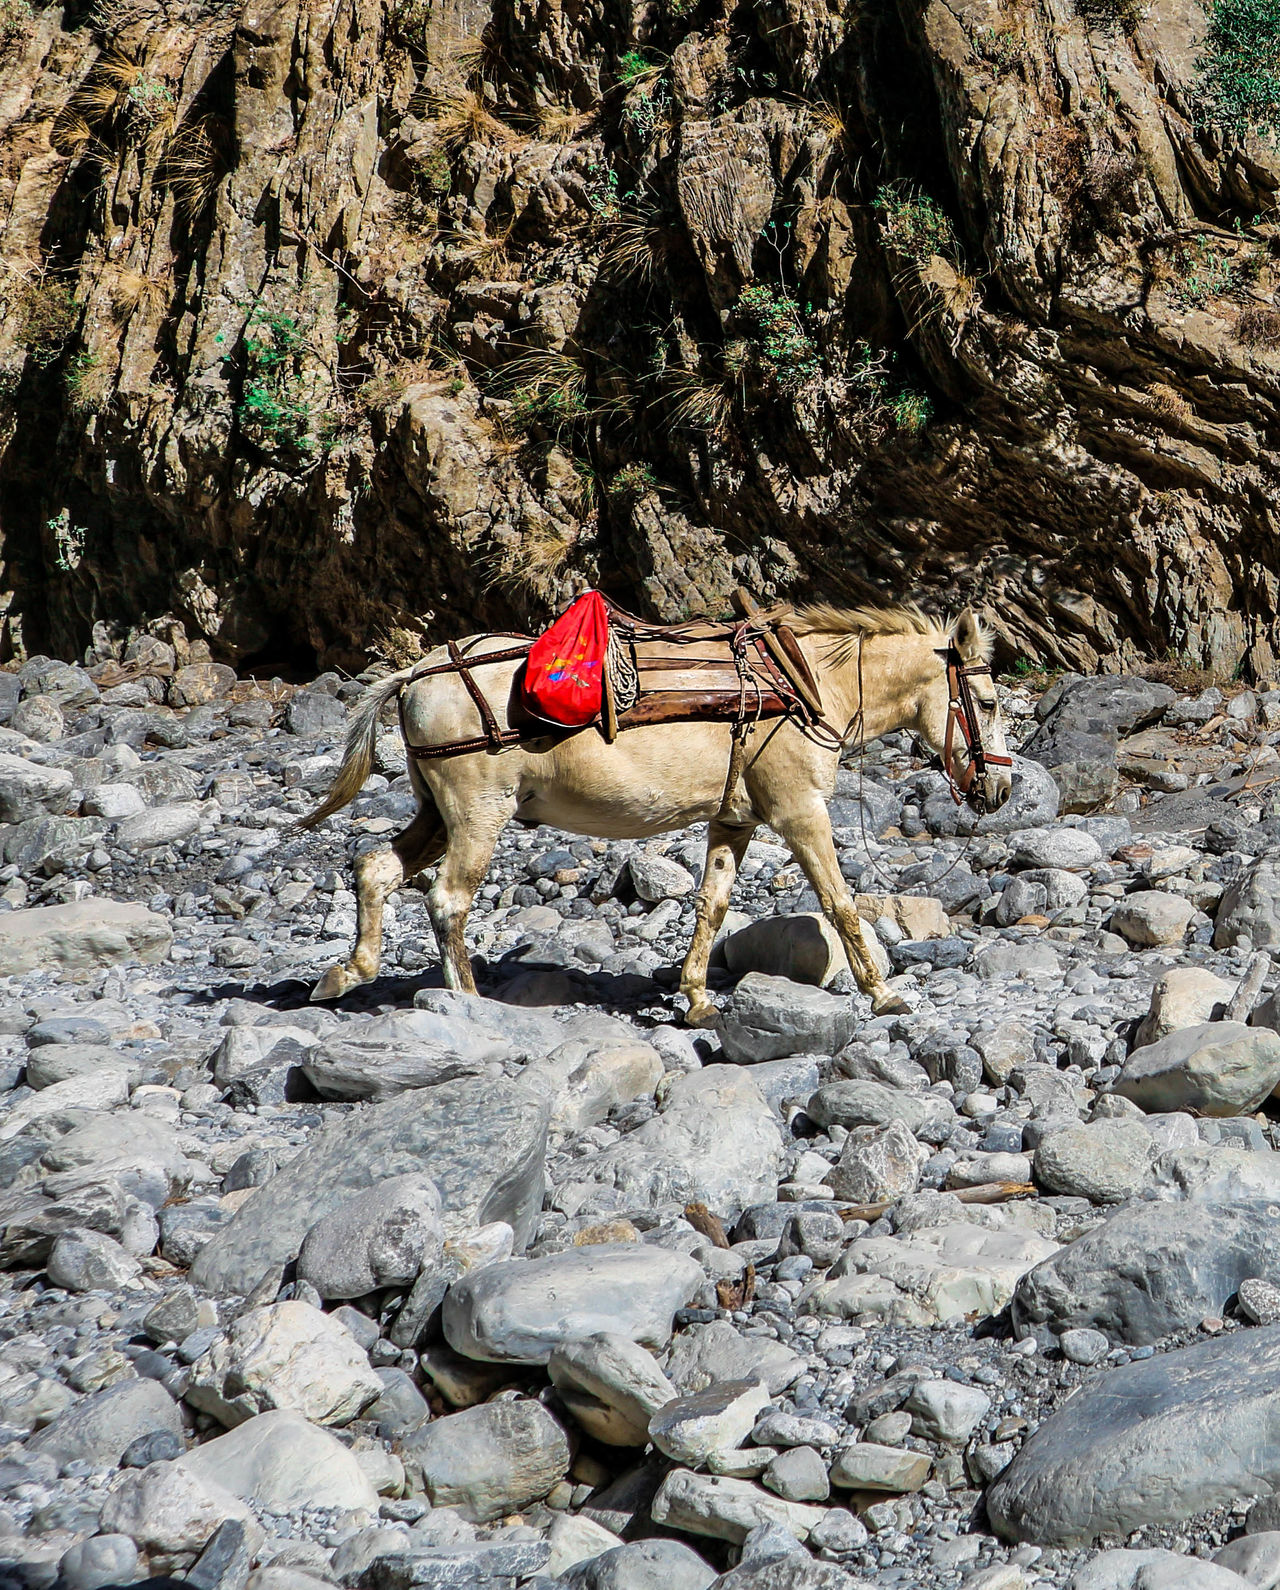 "EyeEm Vision suggests: ""One woman only"" Outdoors Nature Steine Felsenmeer Felswand Rock Formation Canyon Gorge Rocks Samaria Gorge Crete Greece Beauty In Nature Animal Animal Photography Animal Wildlife Animal Themes One Animal Horse Horse Life"